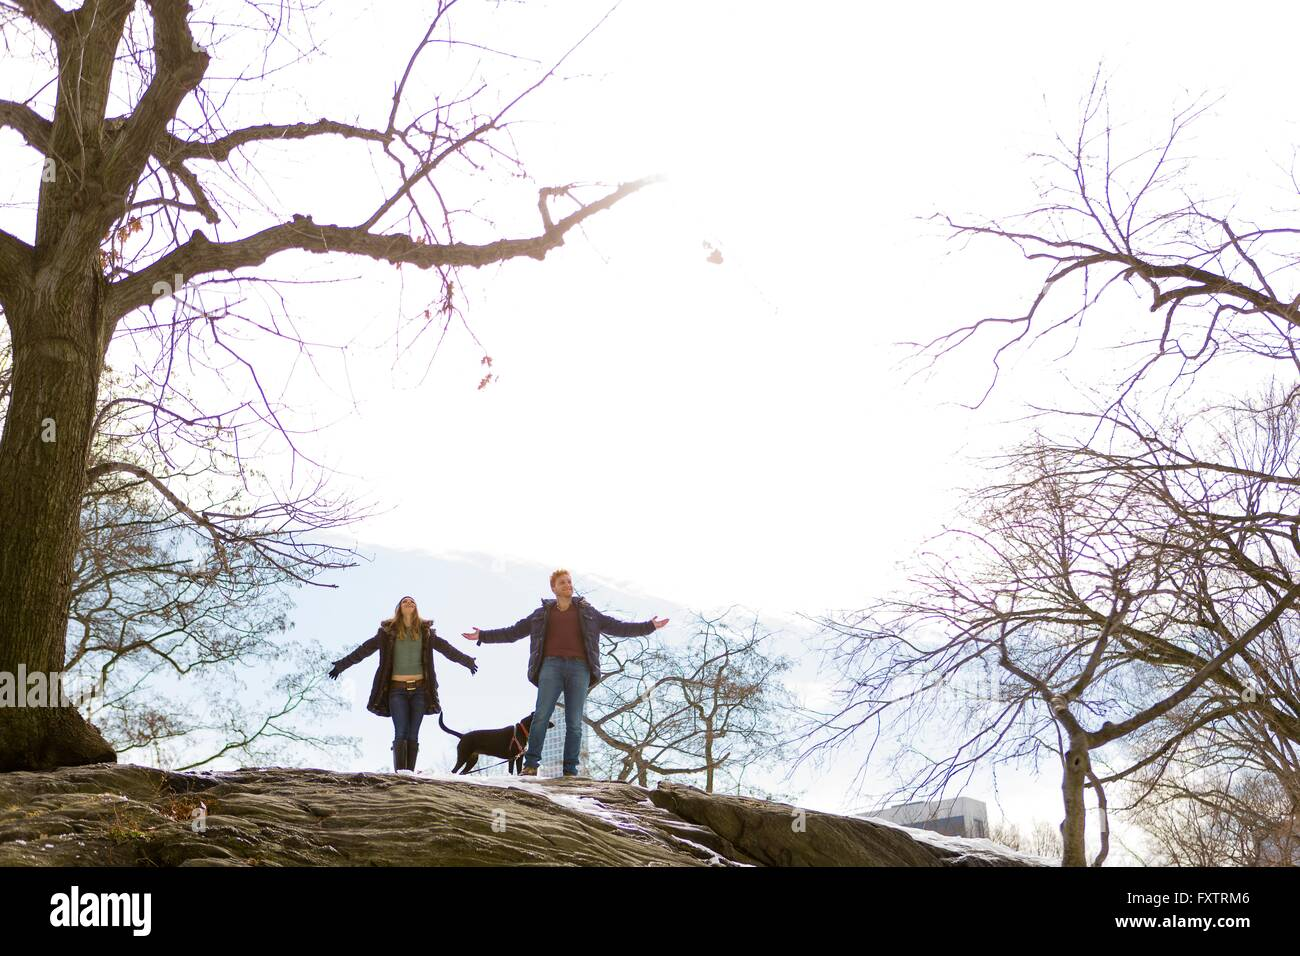 Young couple and dog standing rock in Central Park, New York, USA - Stock Image